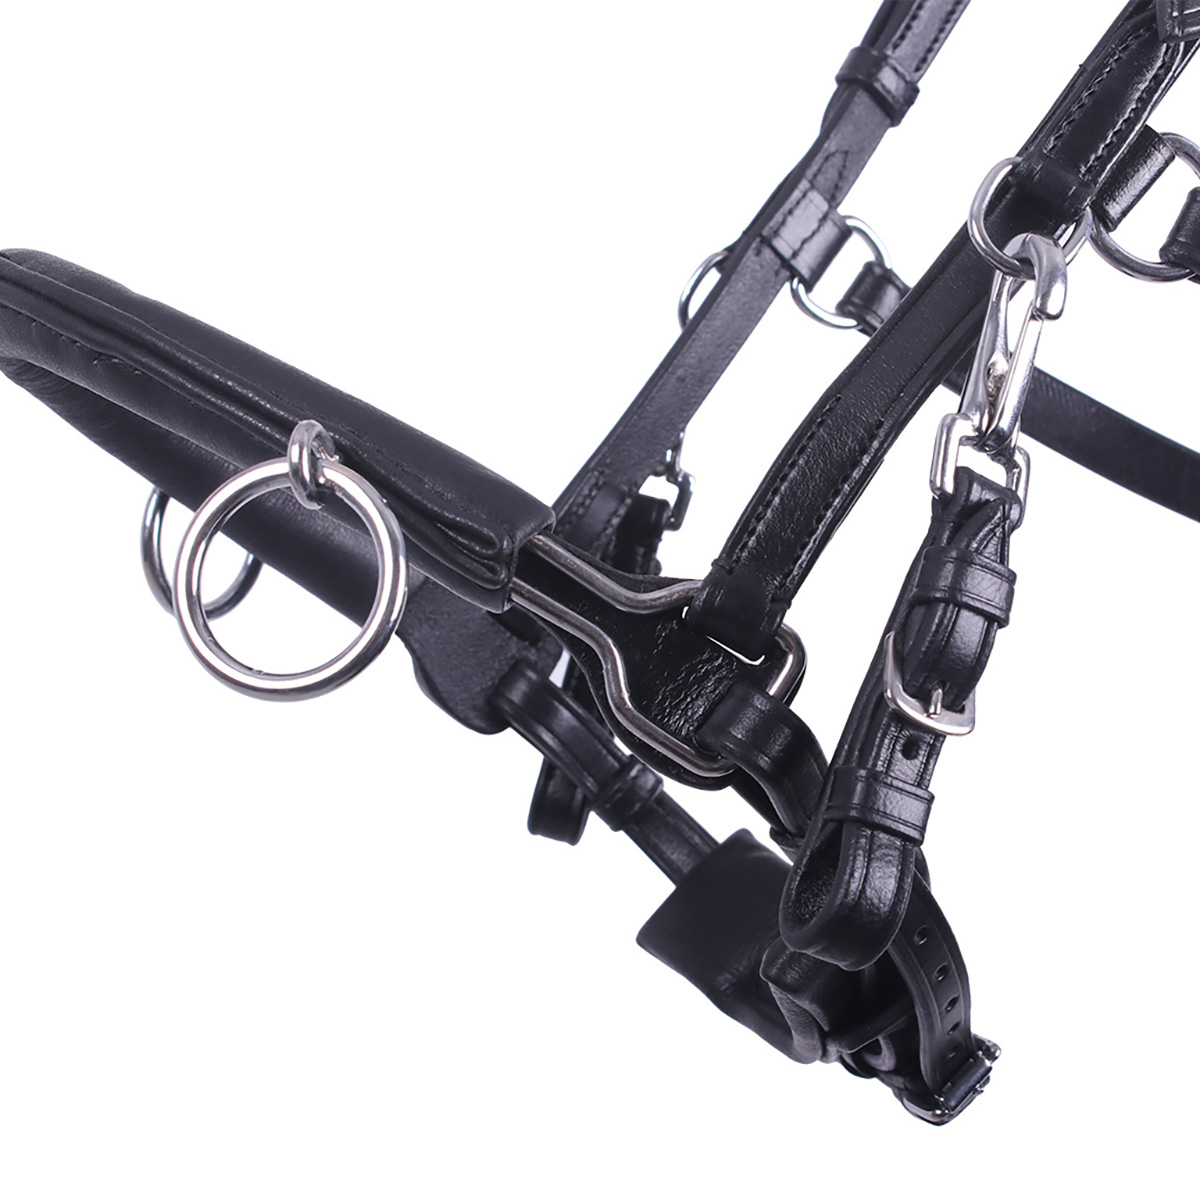 Rijlegging Kingsland Update Klkatja Siliconen, 40�in dark blue